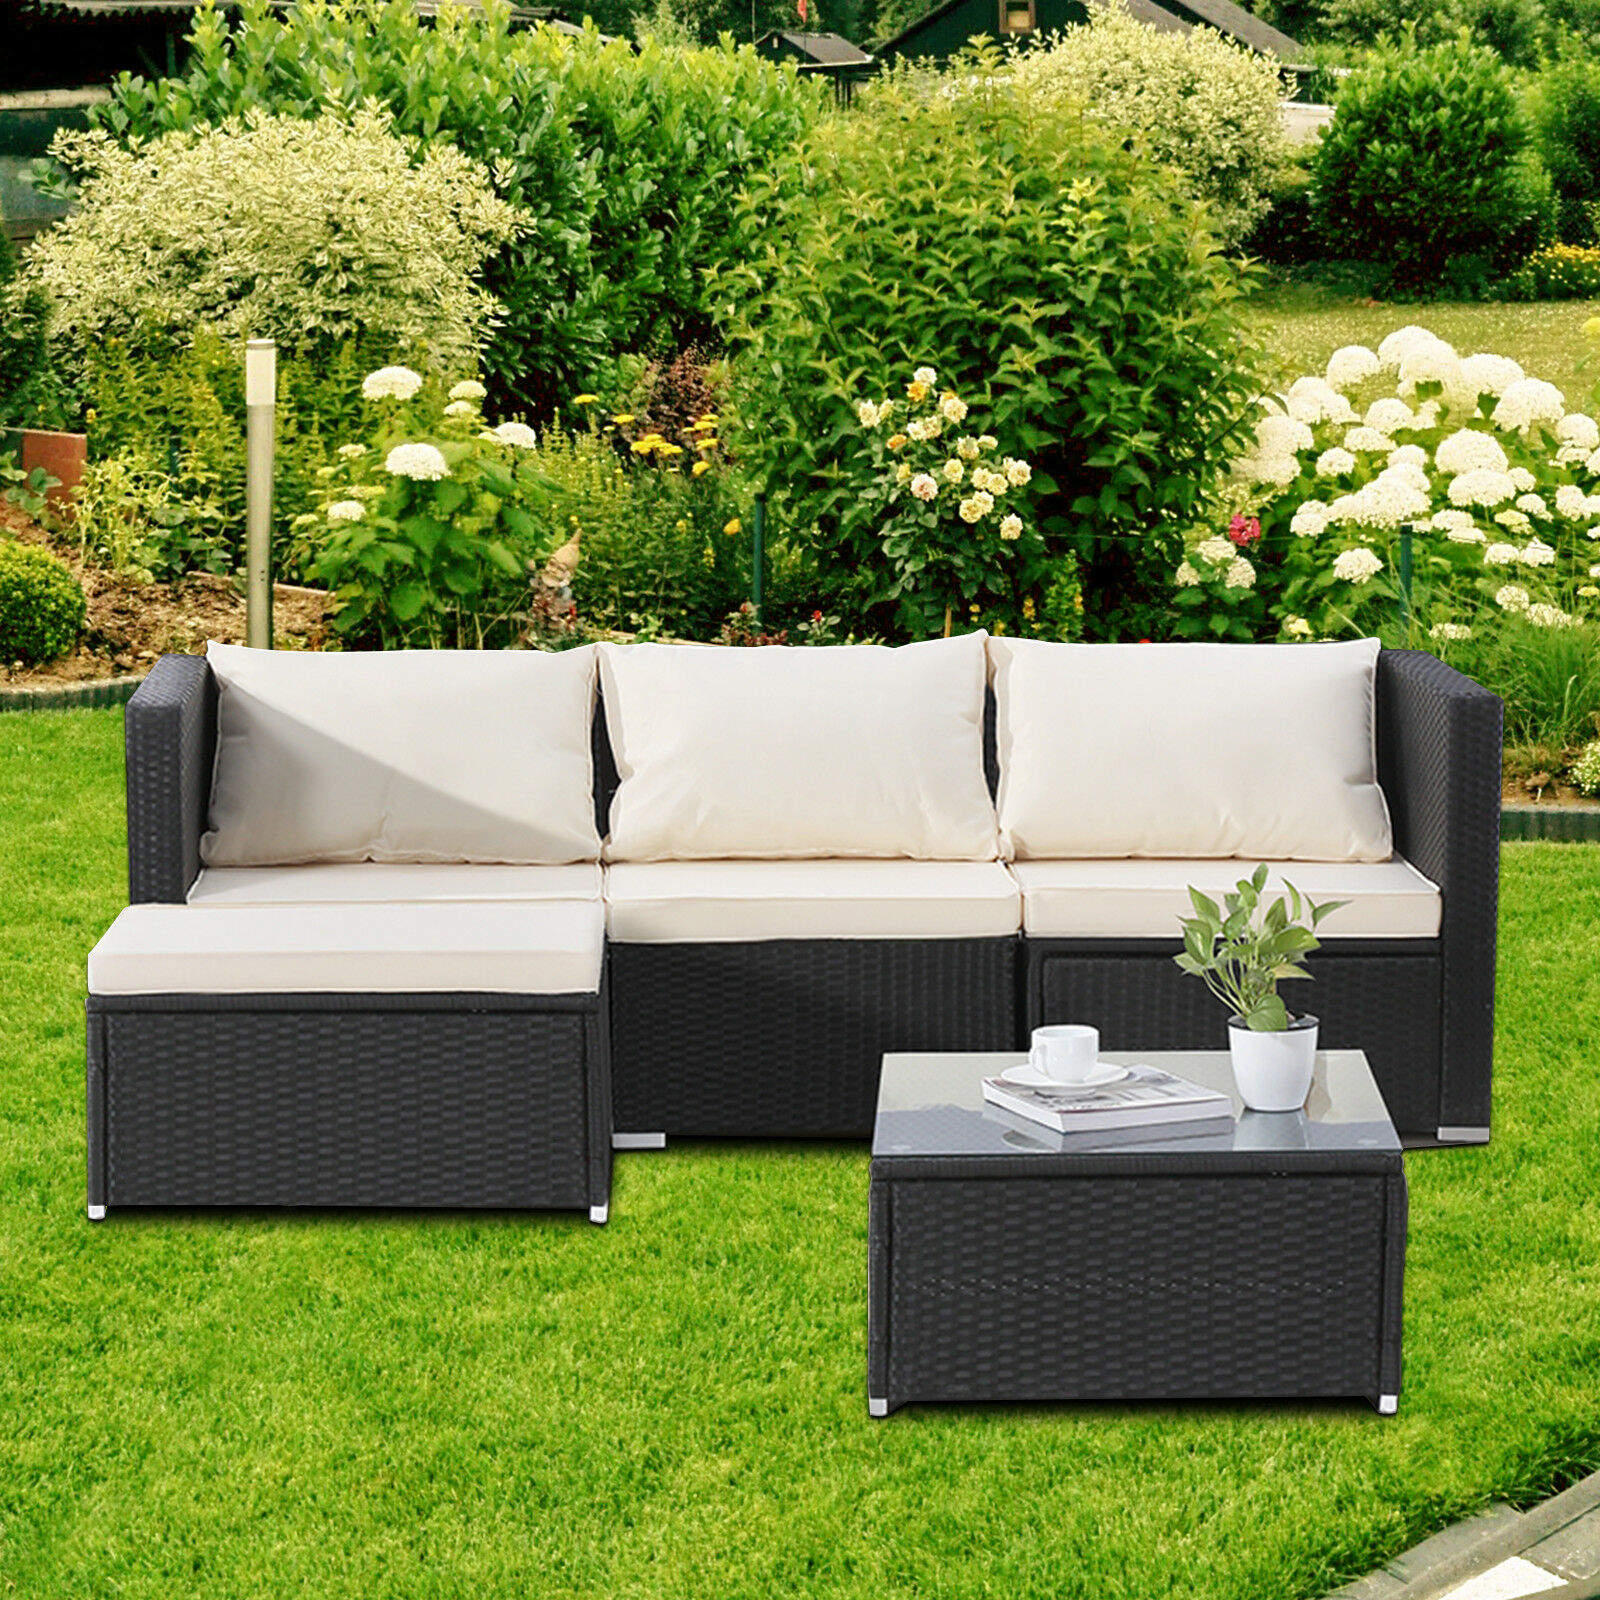 5pc Wicker Rattan Patio Sofa Set Garden Furniture Outdoor Corner Couch Cushion